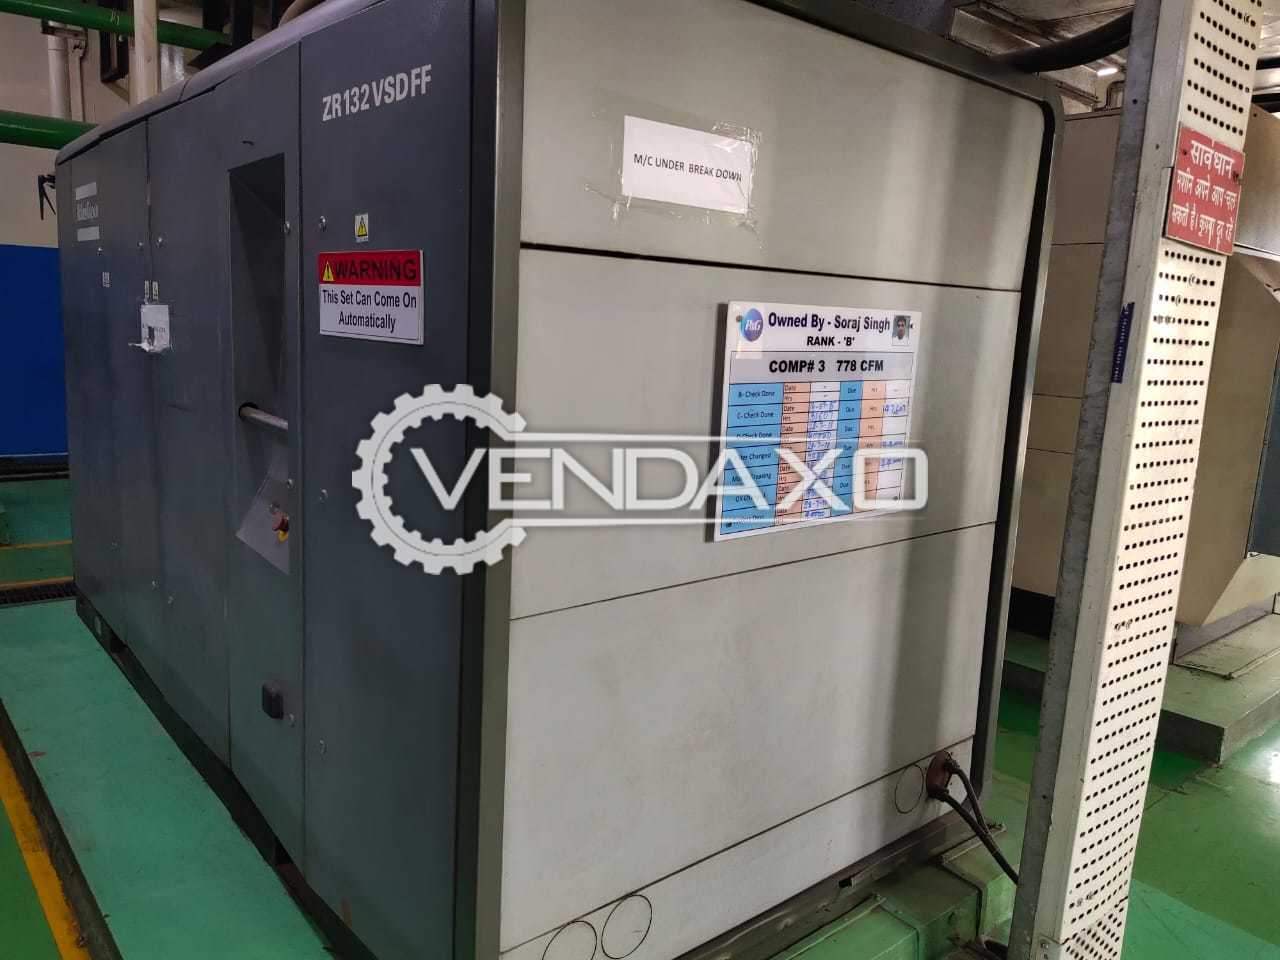 Atlas Copco ZR-132 VSD FF Air Compressor - 132 kW, 2010 Model